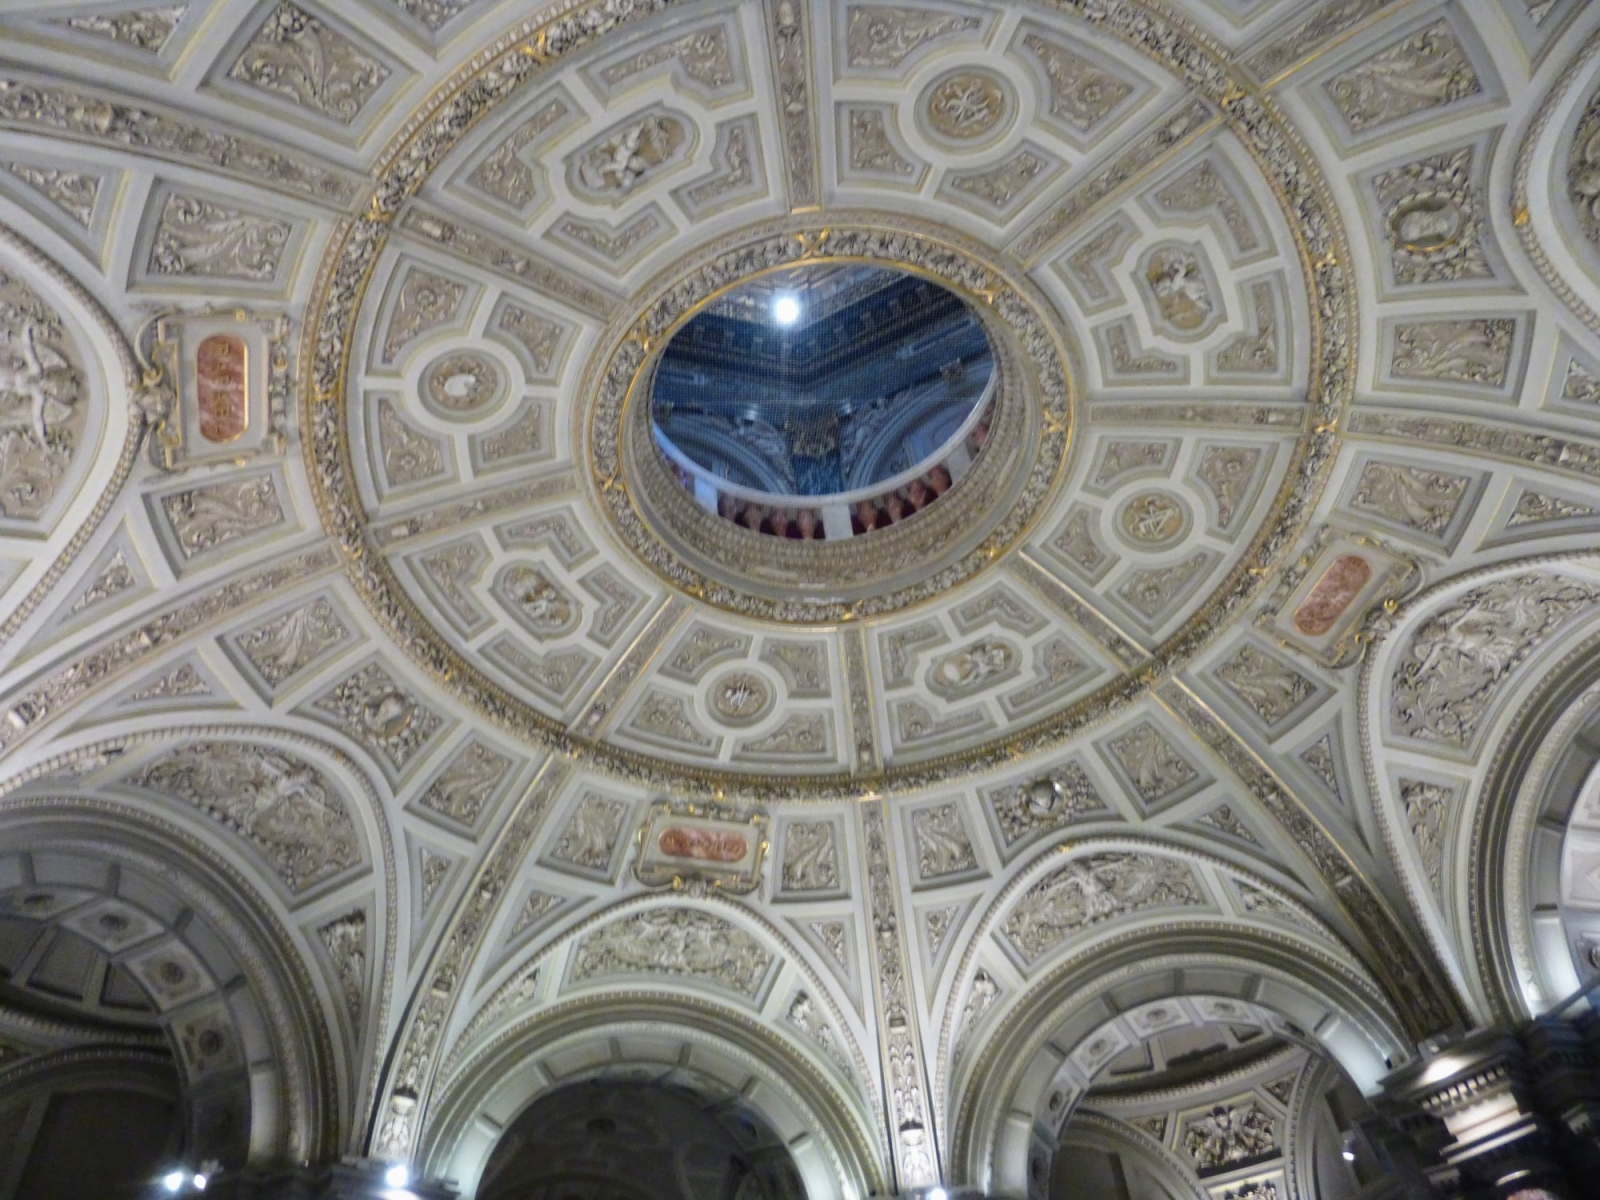 Entrance hall ceiling